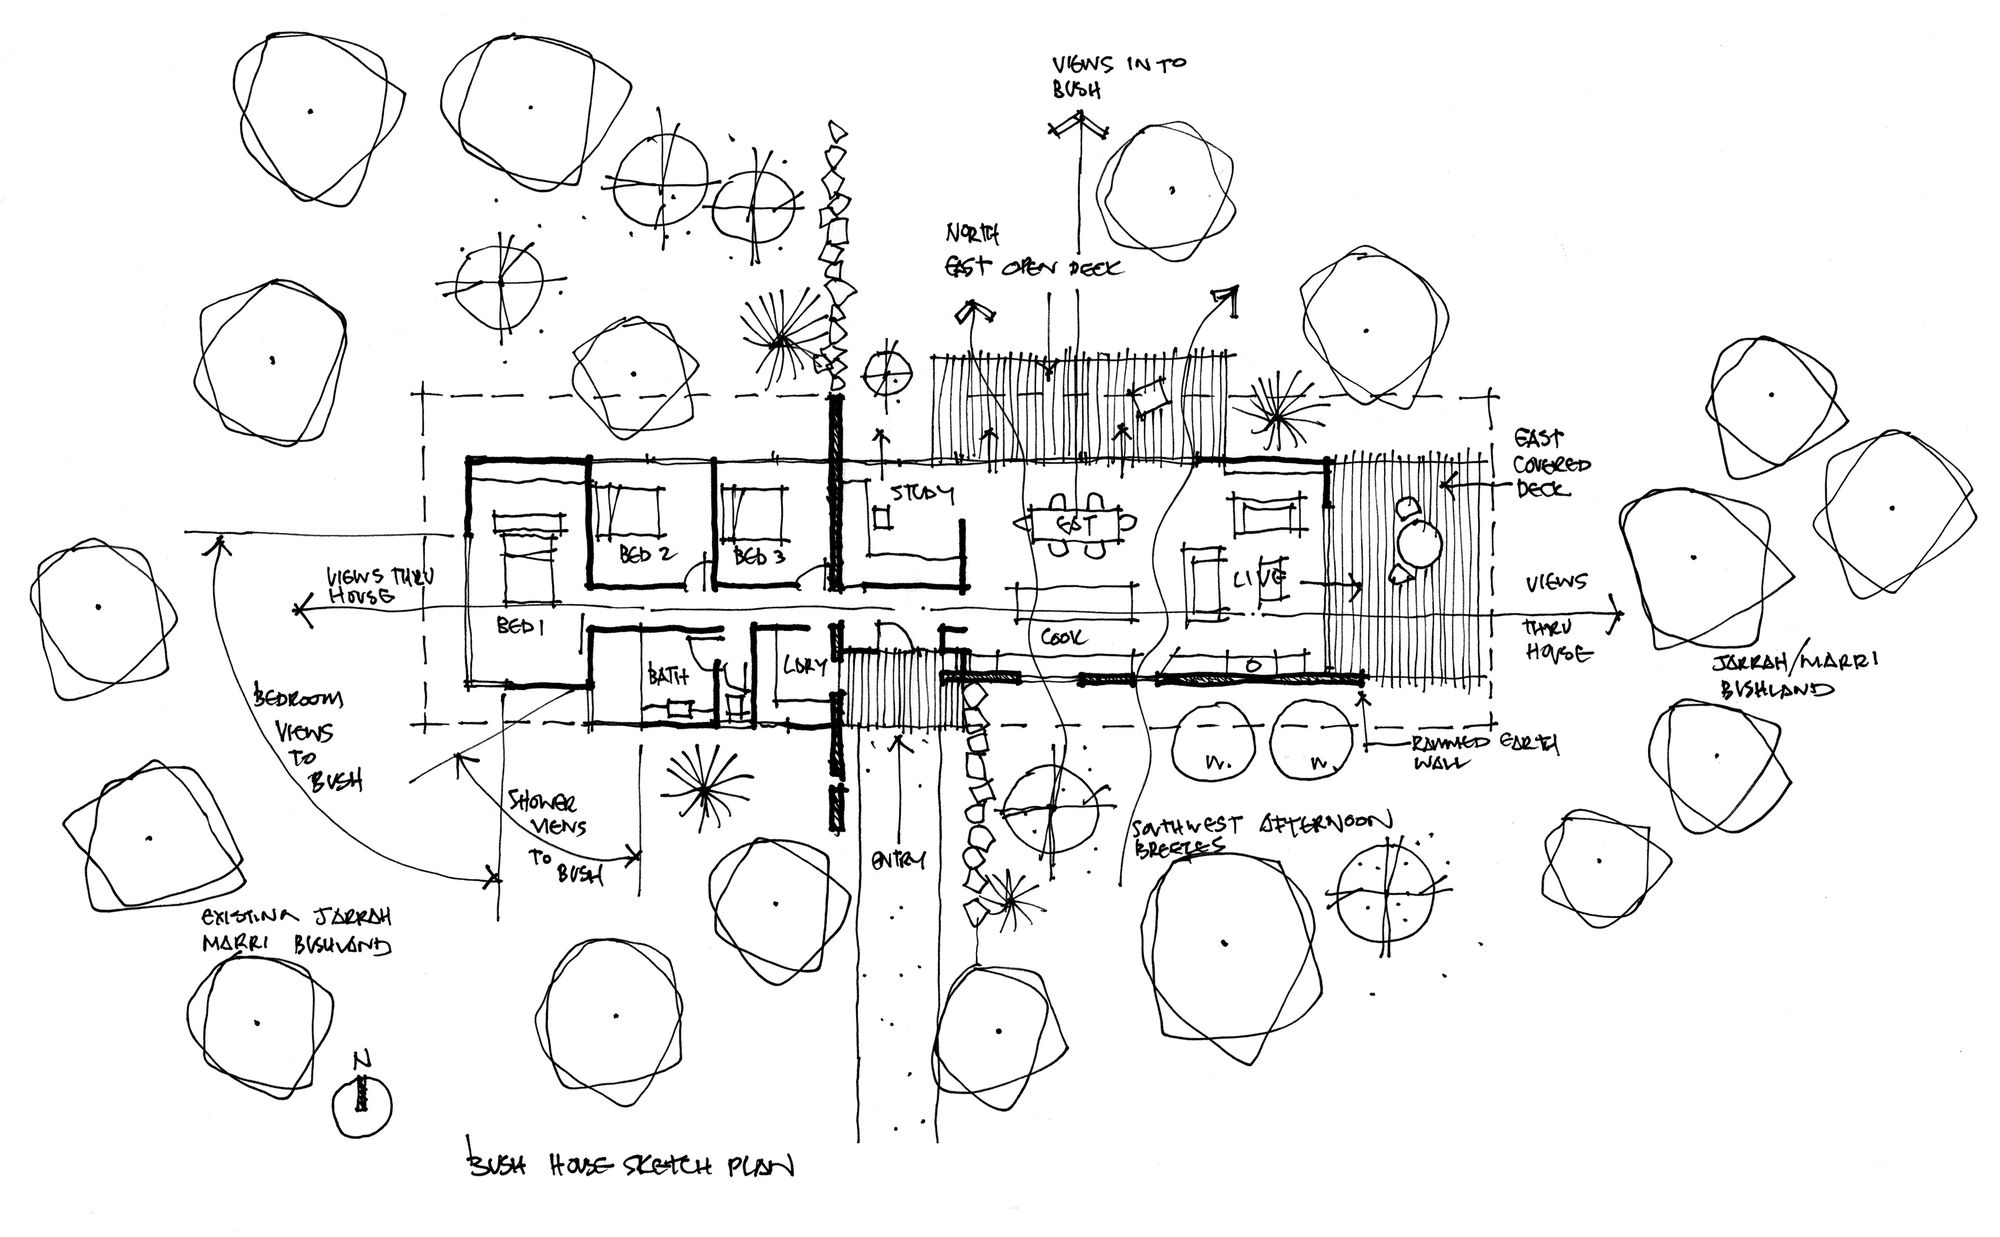 image 24 of 28 from gallery of bush house archterra architects croquis floor plan [ 2000 x 1237 Pixel ]